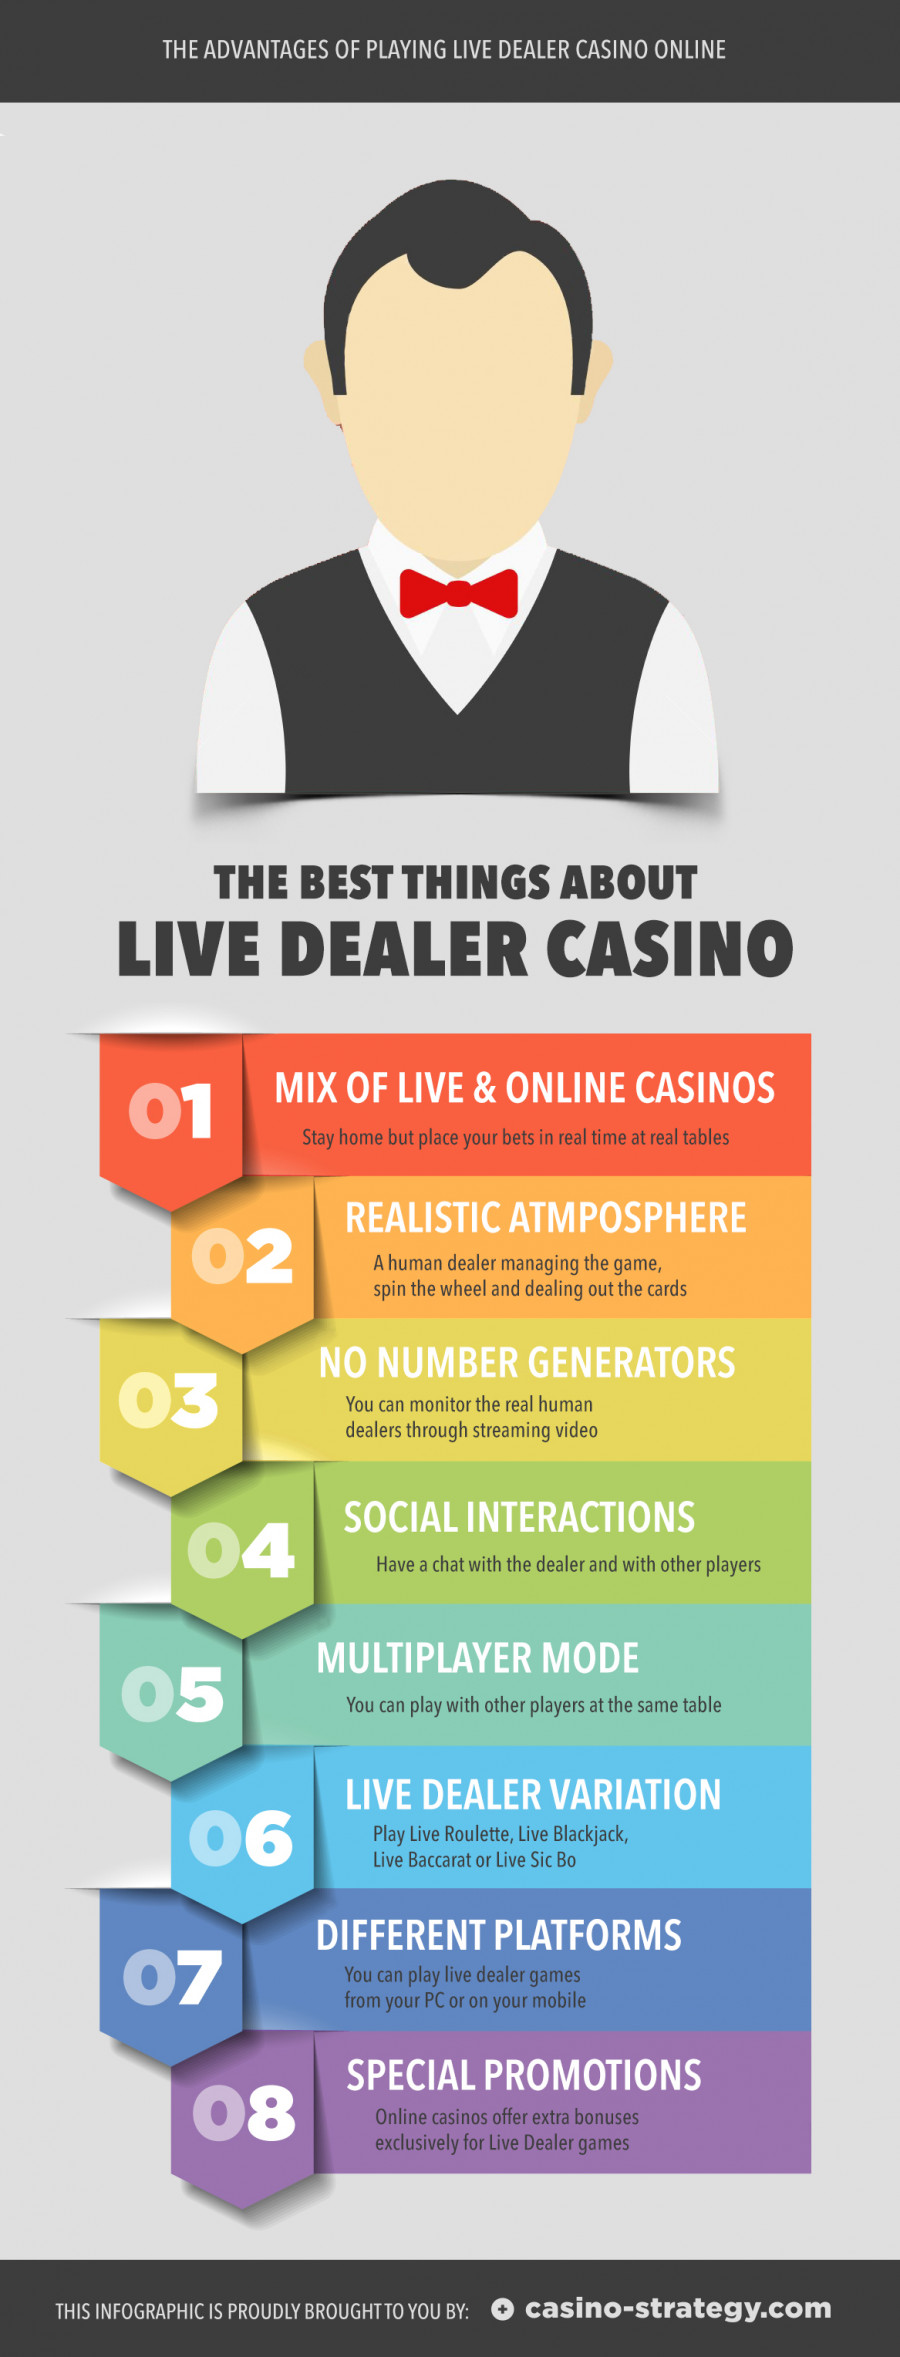 294673? w=900 - Live Dealer Casino Games and How They Work